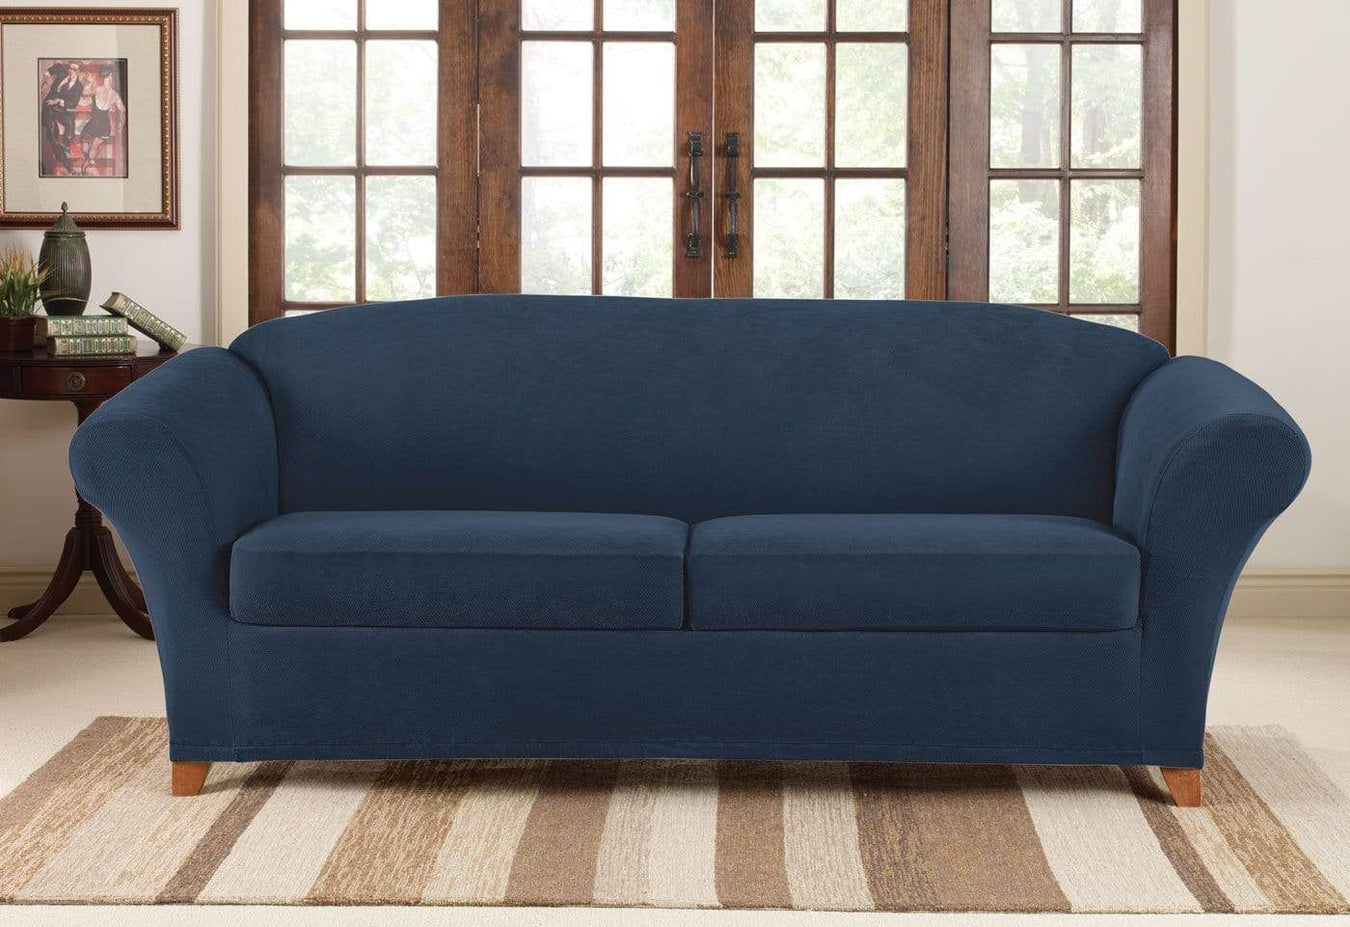 NEW Stretch Pique  t cushion Sofa size Slipcover Navy blue sure fit